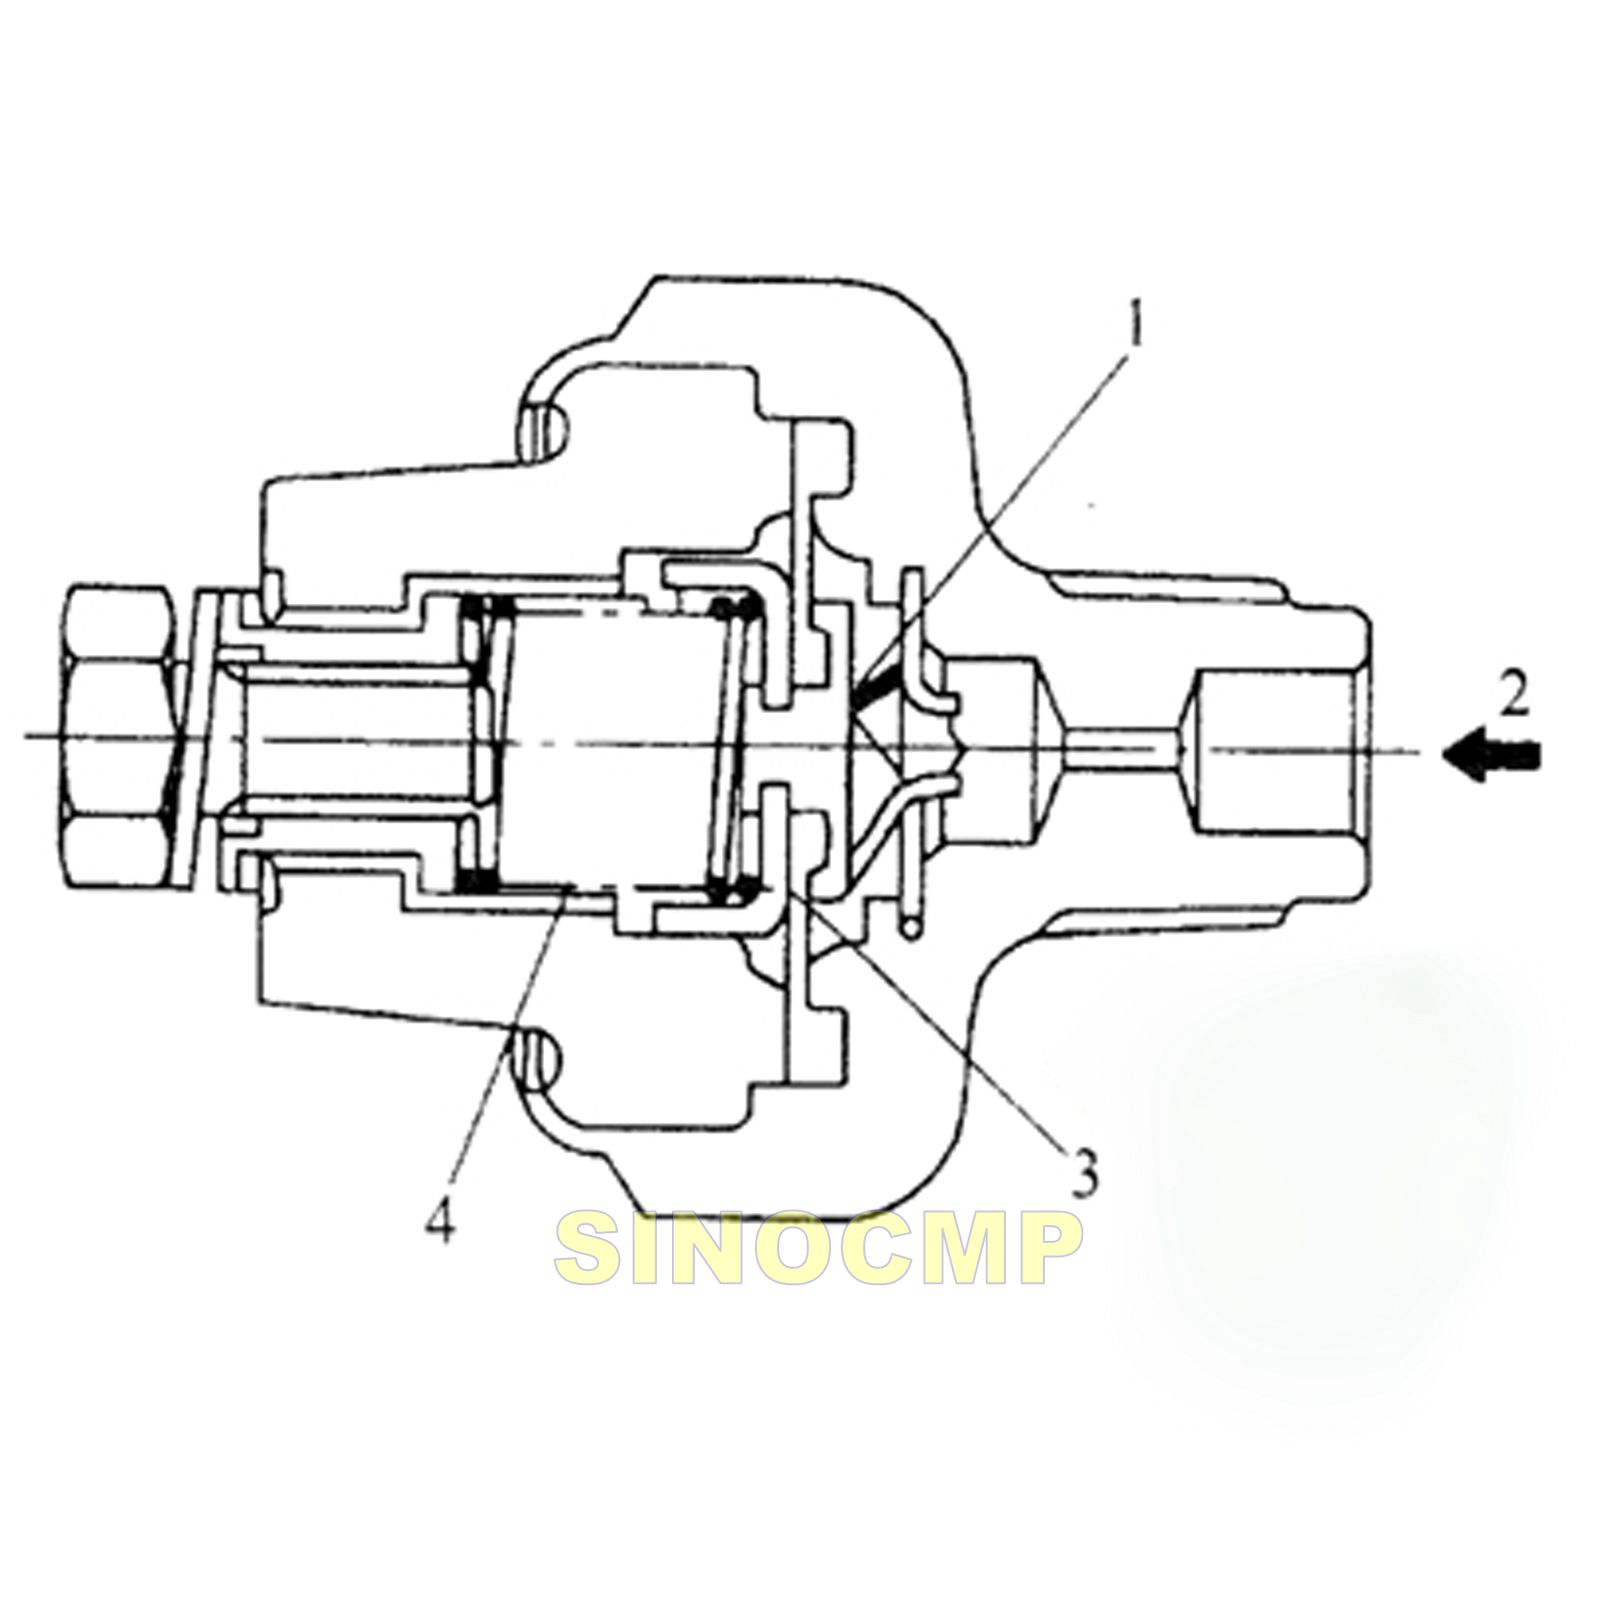 hight resolution of oil pressure sensor 3e 6455 3e6455 for e330b engine 3114 3116 garden tractor wiring diagram hitachi excavator wiring diagram